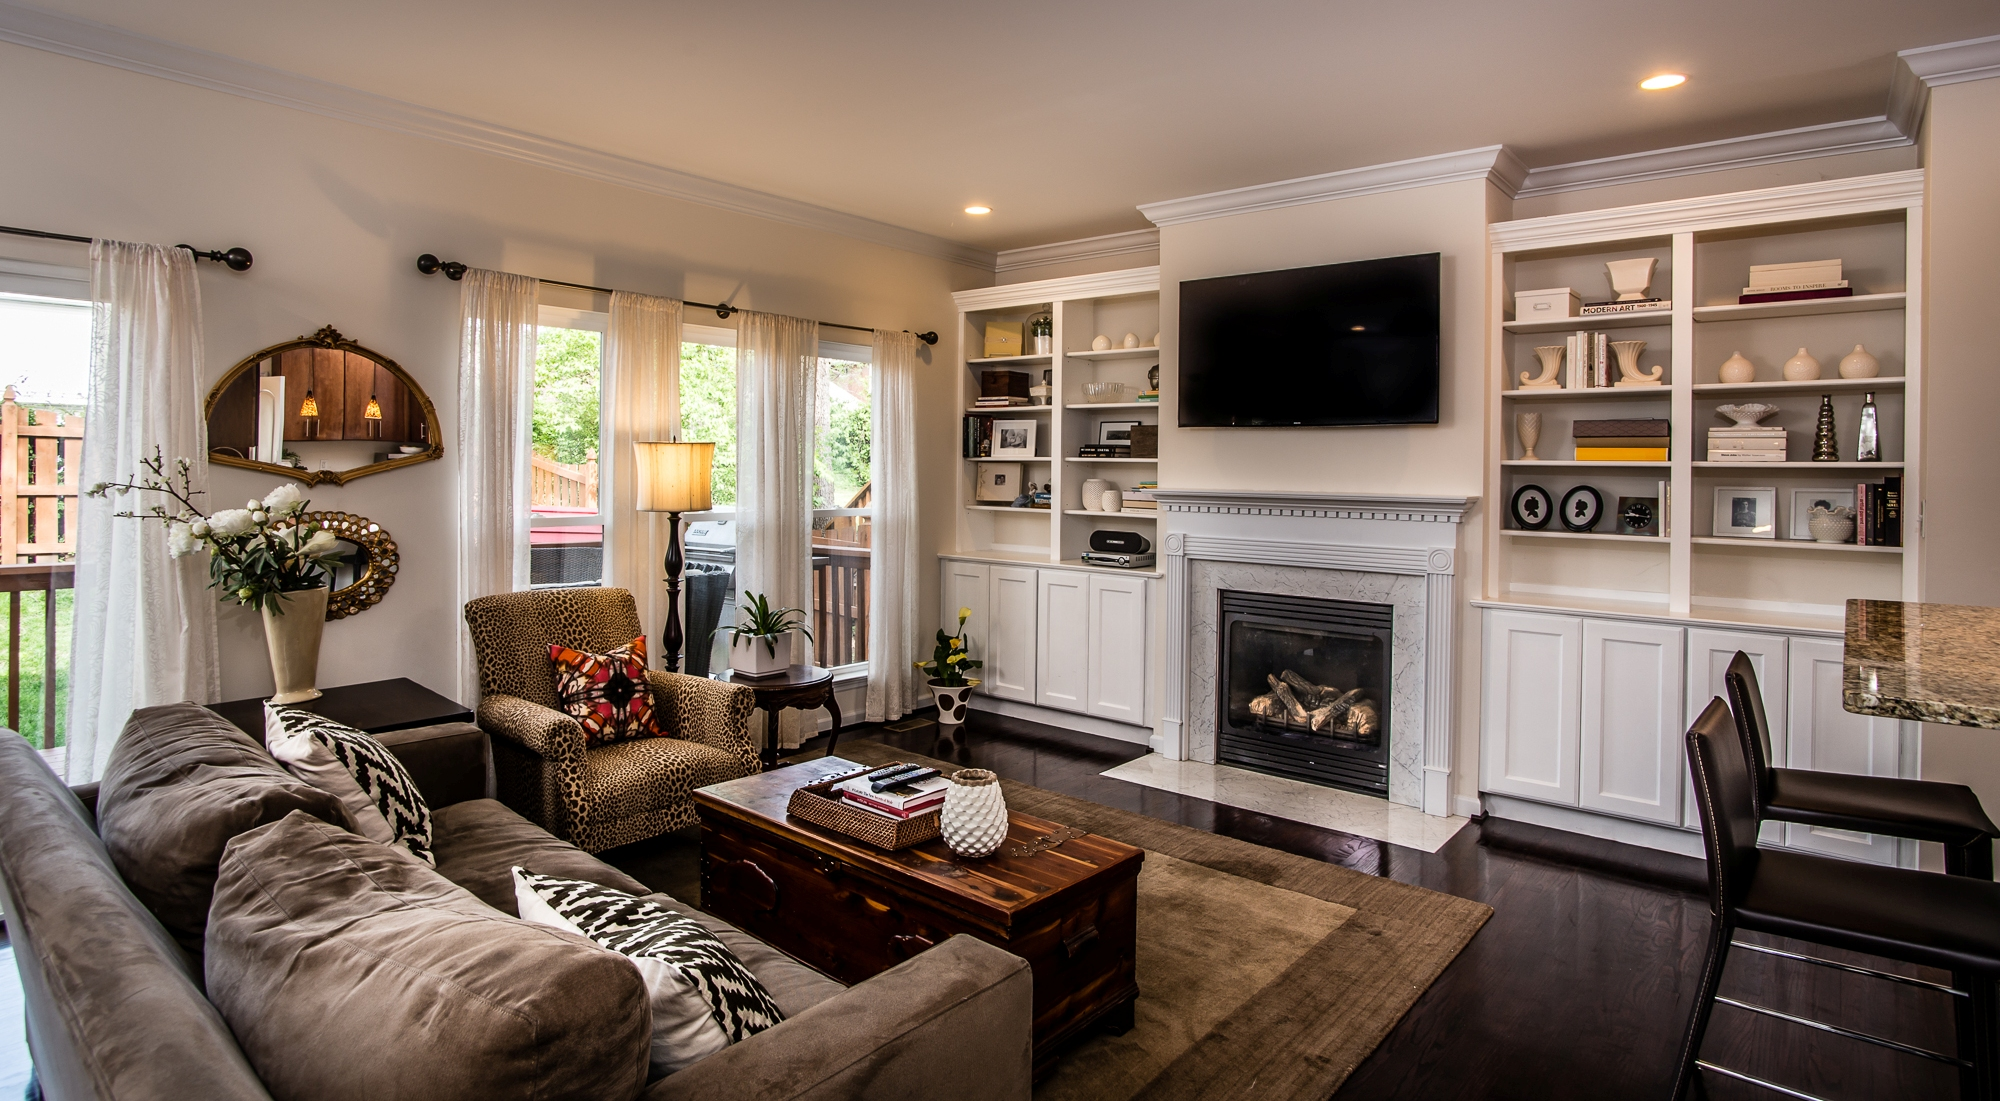 Saint louis real estate saint louis homes for sale - How to take interior photos for real estate ...